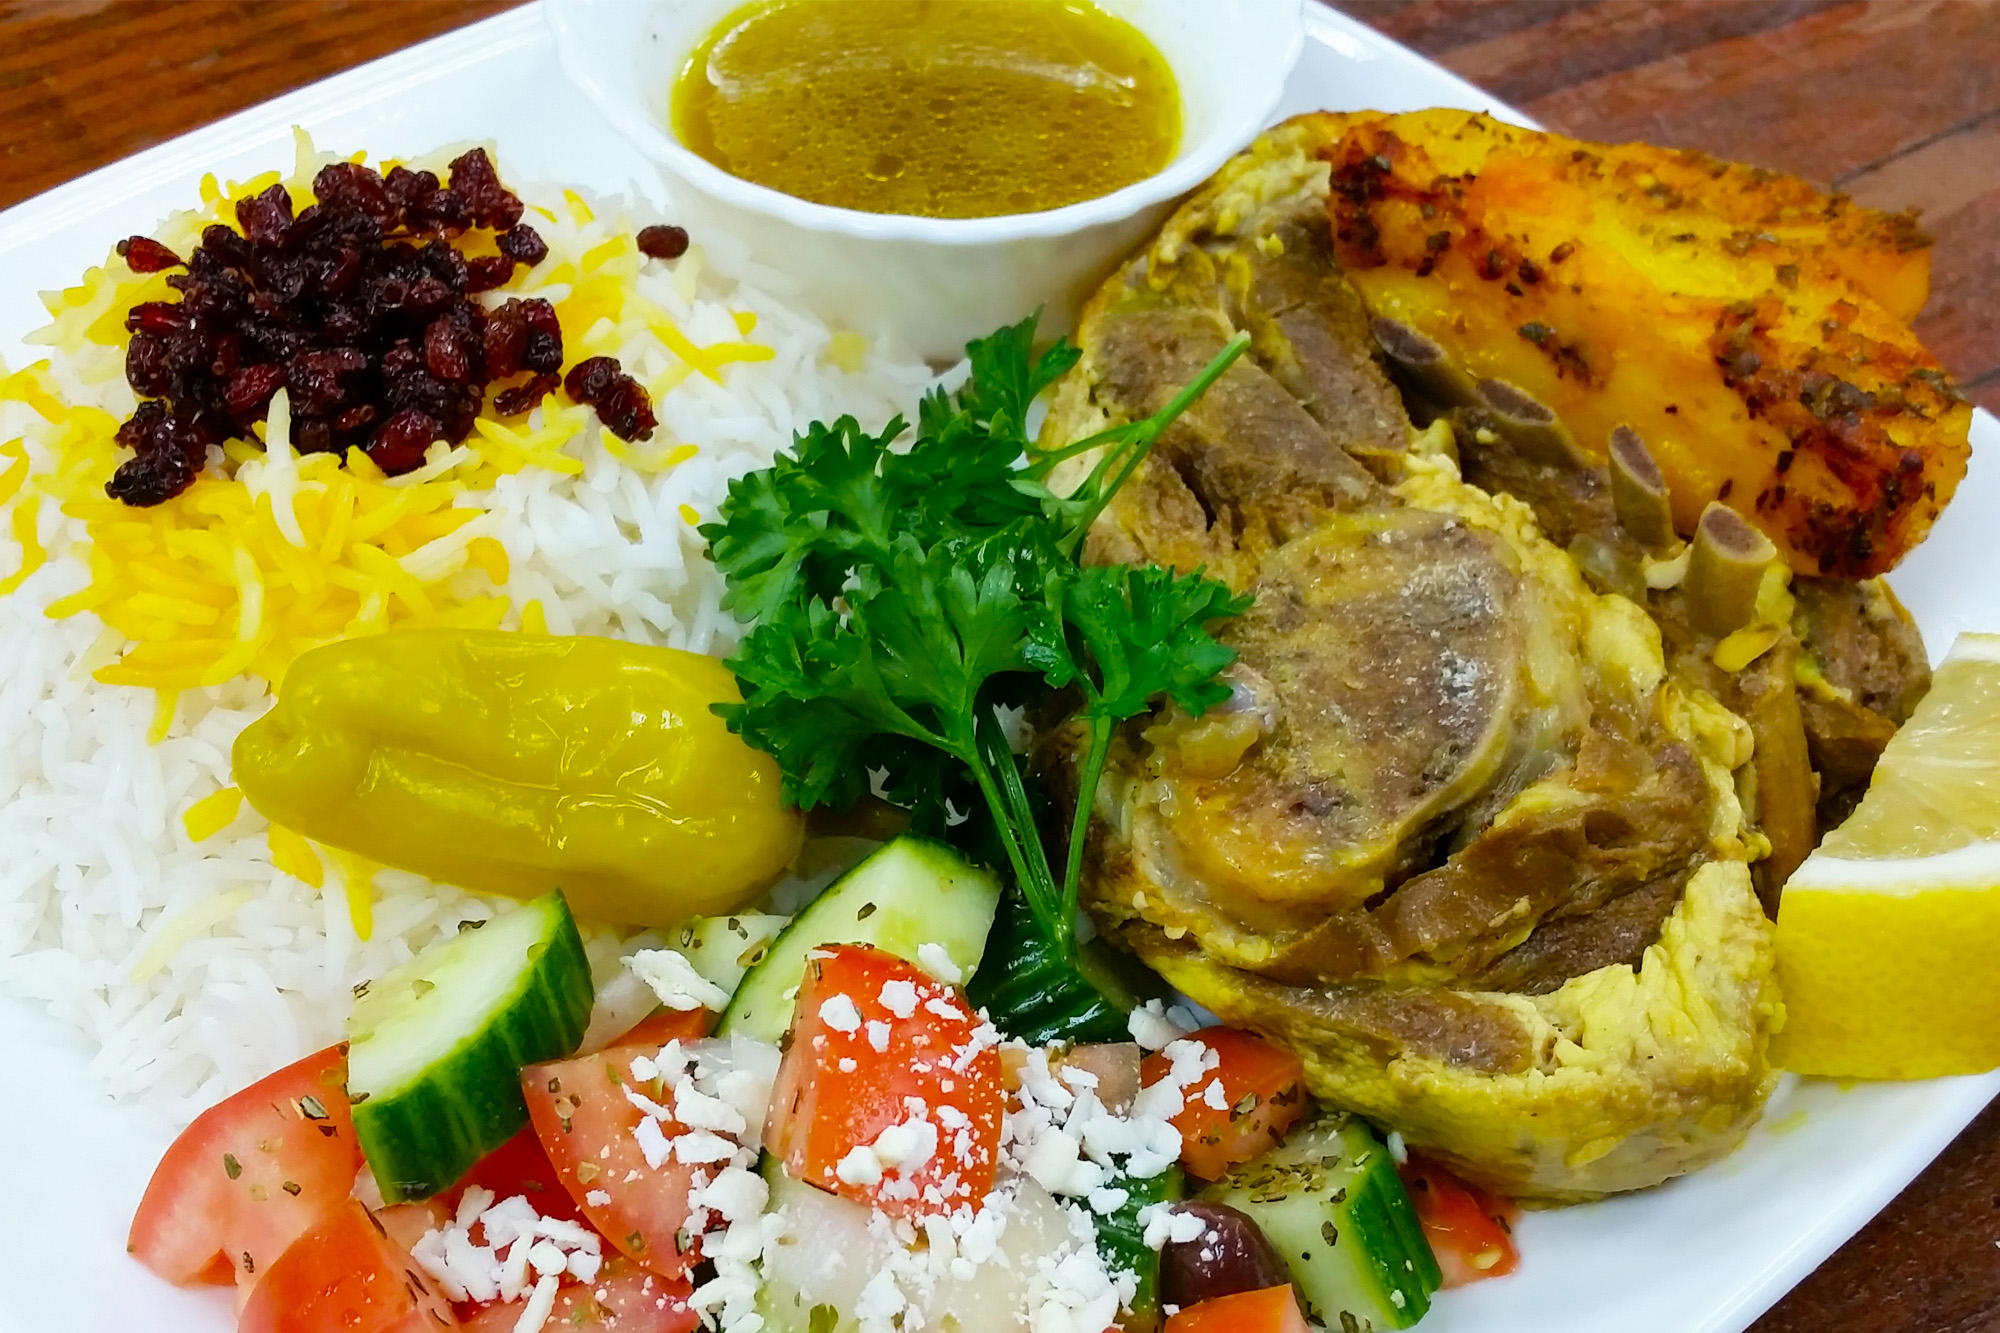 Roast Lamb = Lamb shoulder with Greek salad and potatoes at Sahel Persian Restaurant